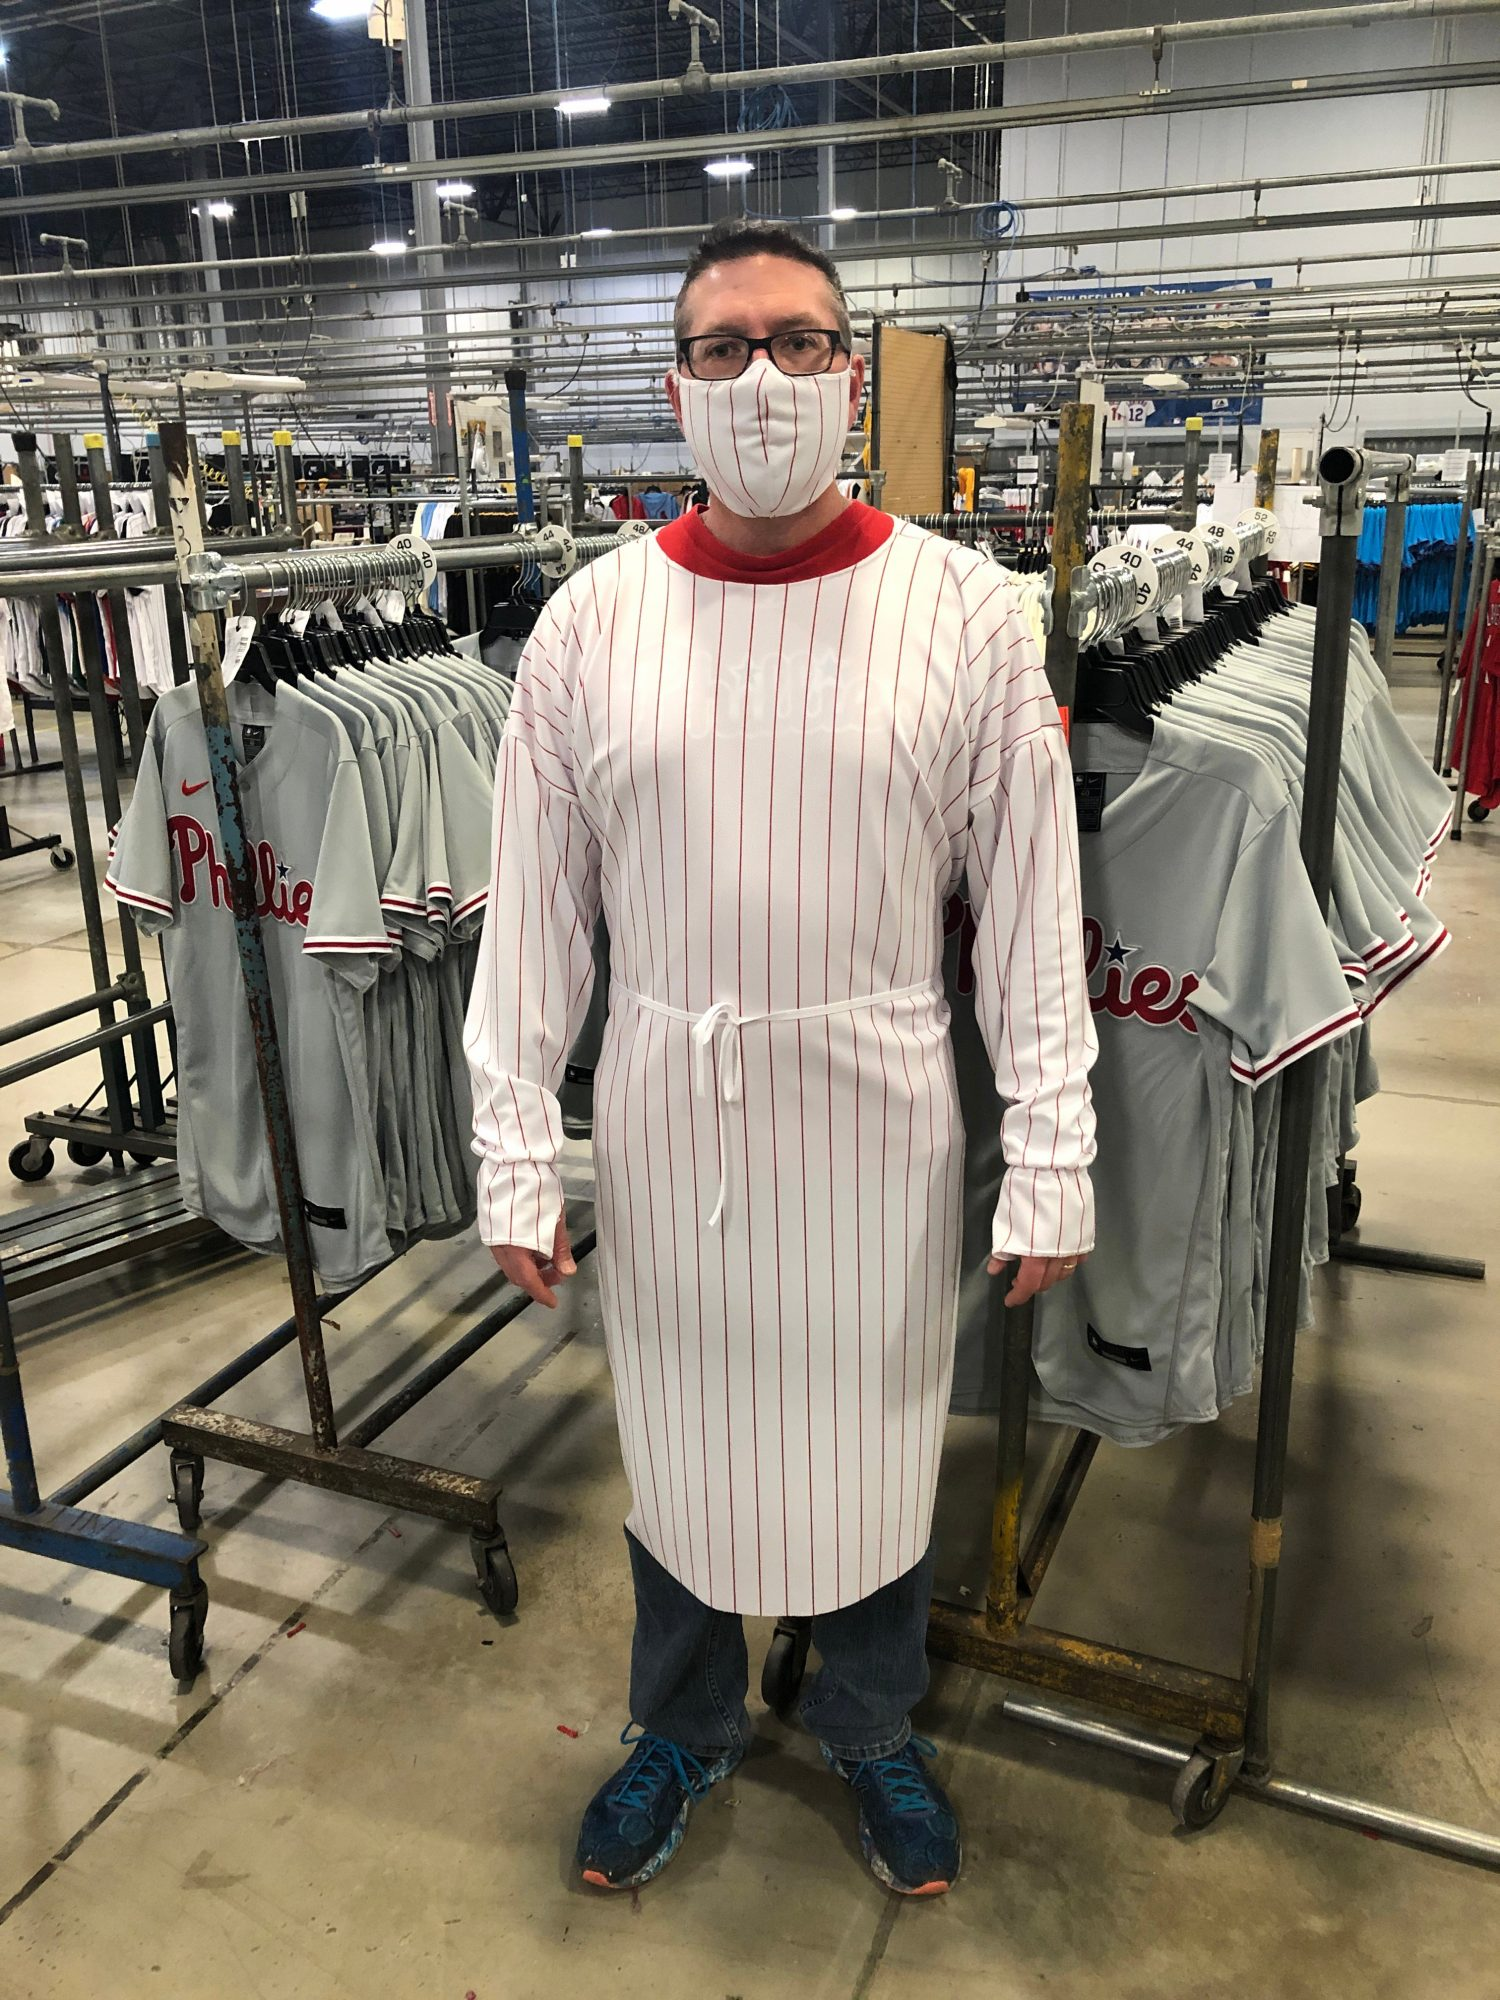 MLB Jersey Manufacturer Making Masks, Hospital Gowns